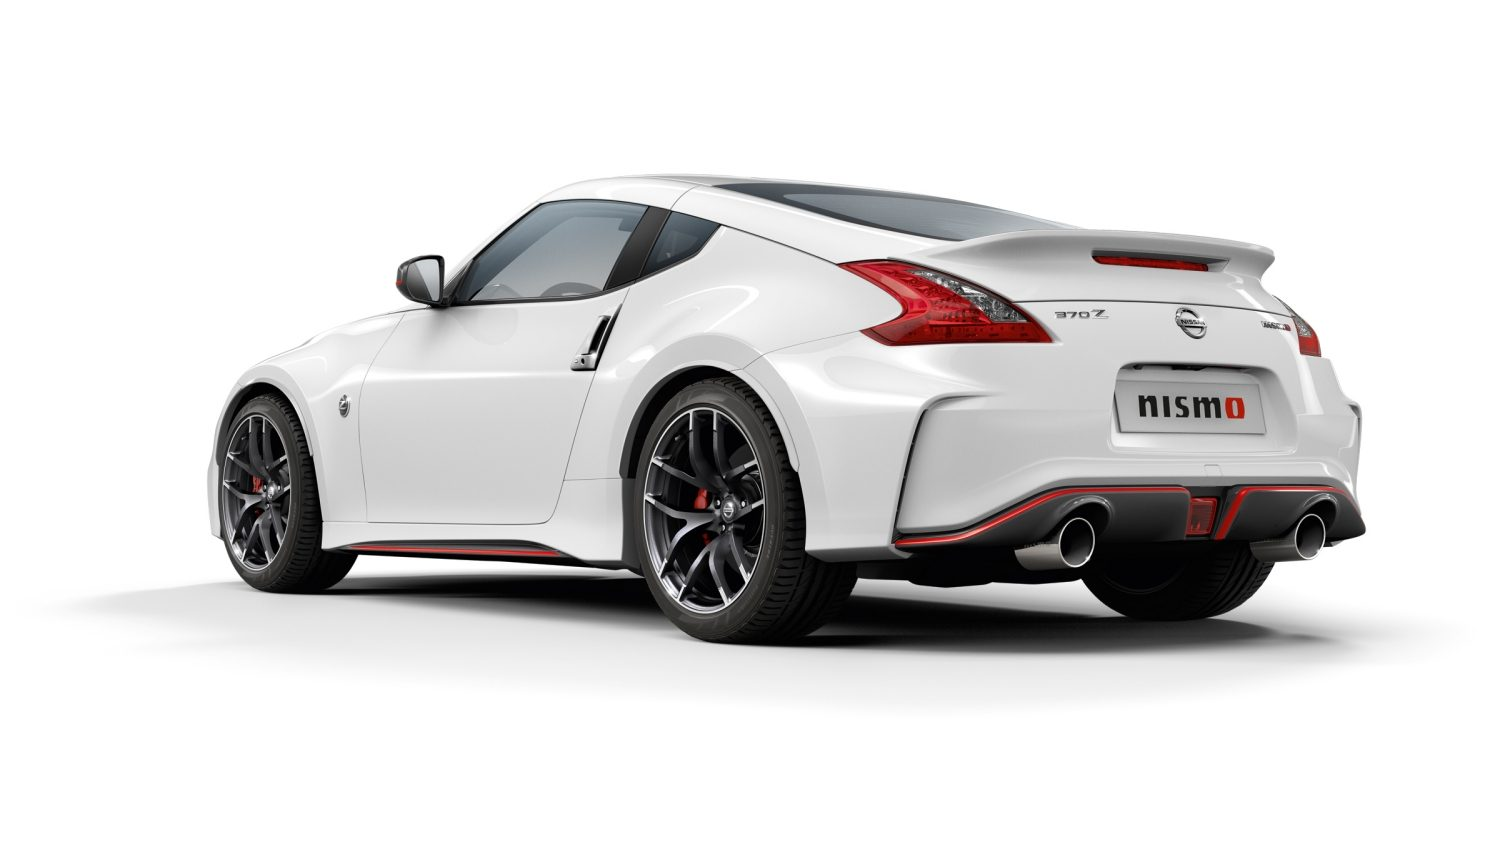 NISSAN 370Z COUPÉ Brilliant White – Heckansicht